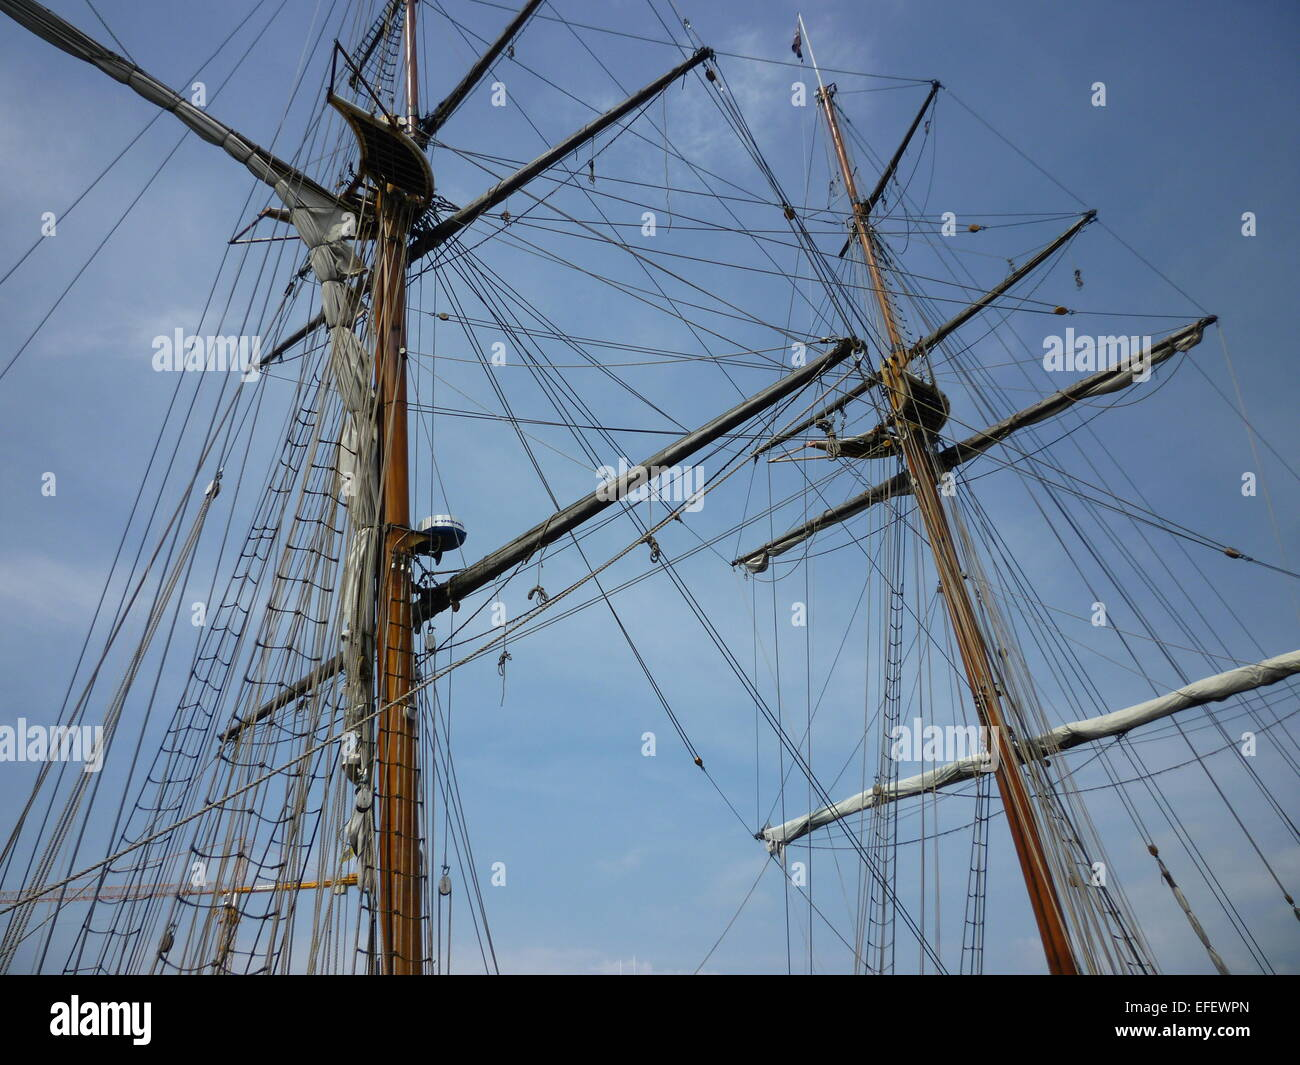 Rigging and blue skies - Stock Image